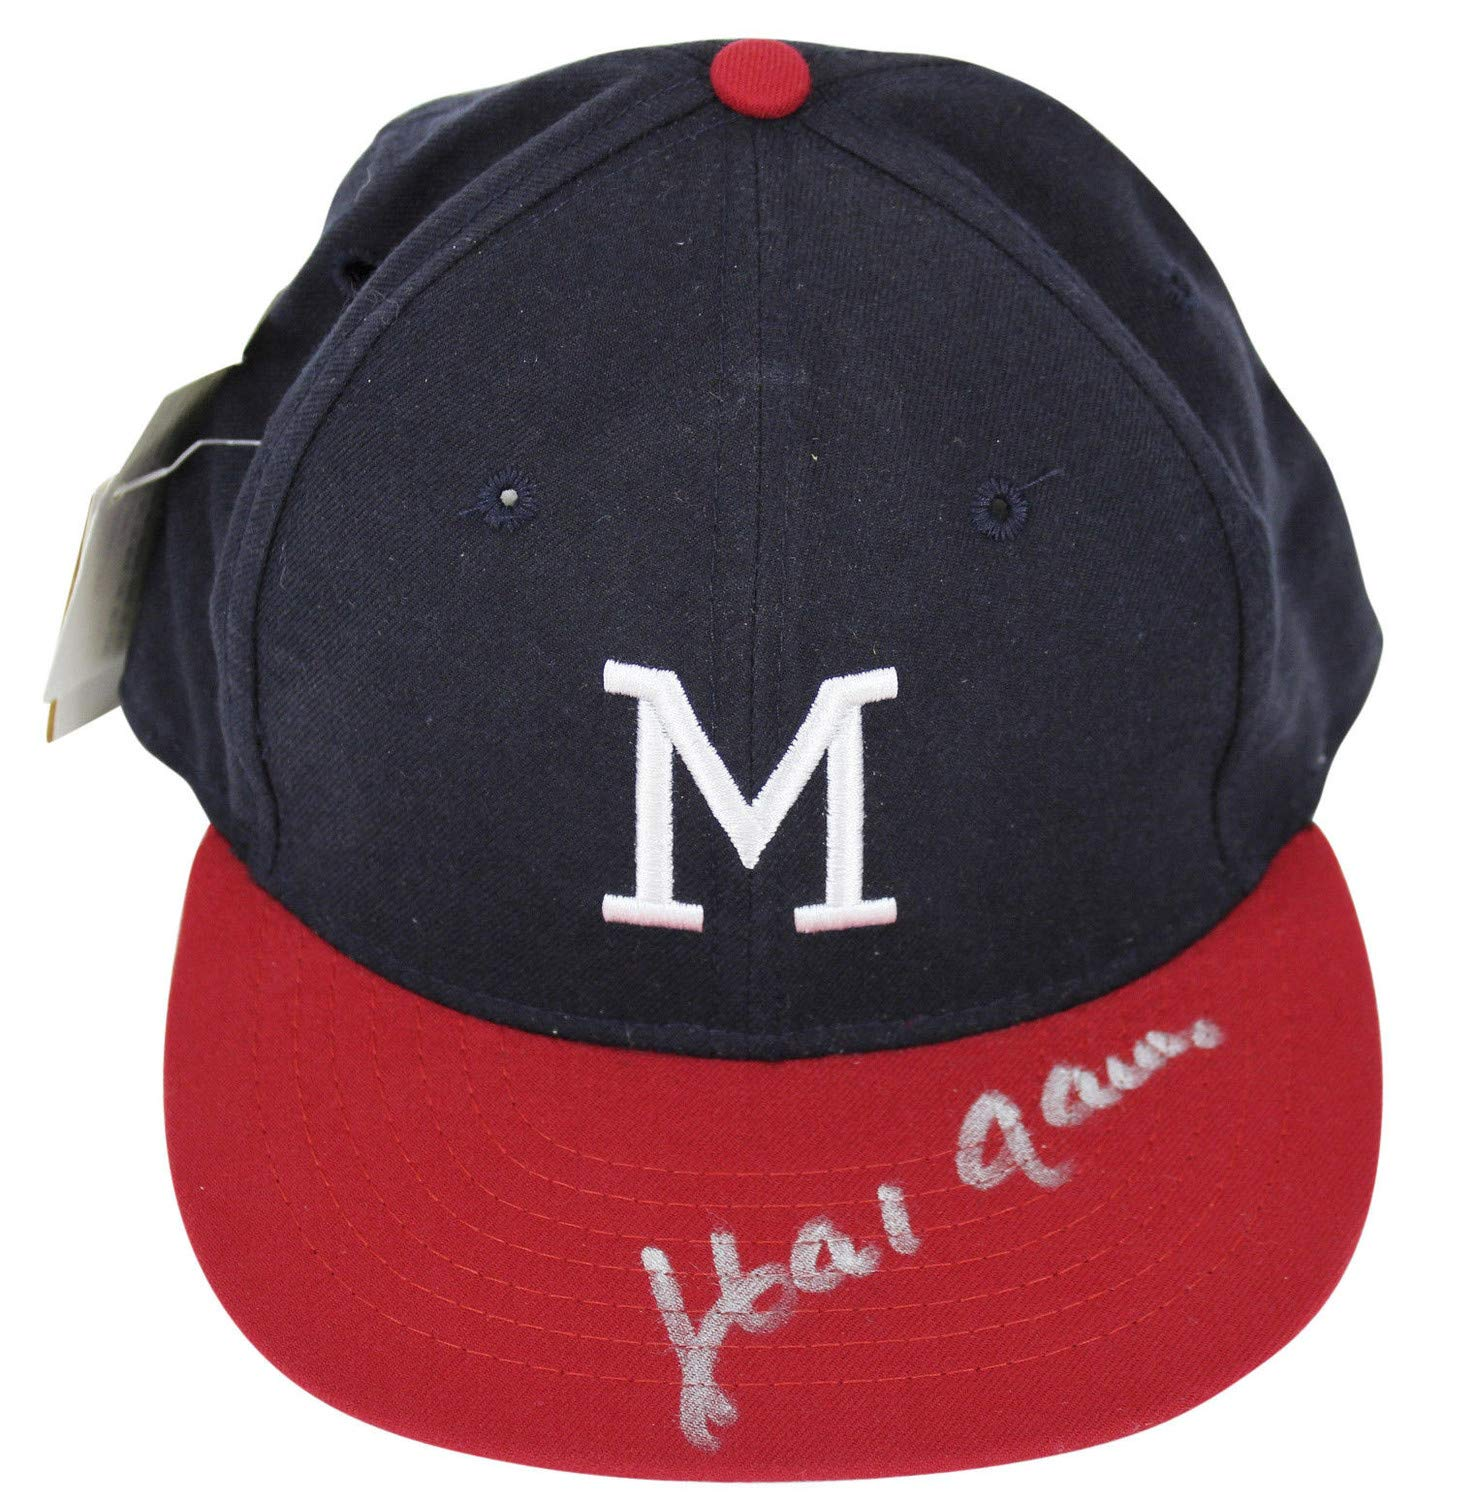 Braves Hank Aaron Autographed Signed Cooperstown Collection 1953 65 Throwback Hat Bas Certified Authentic